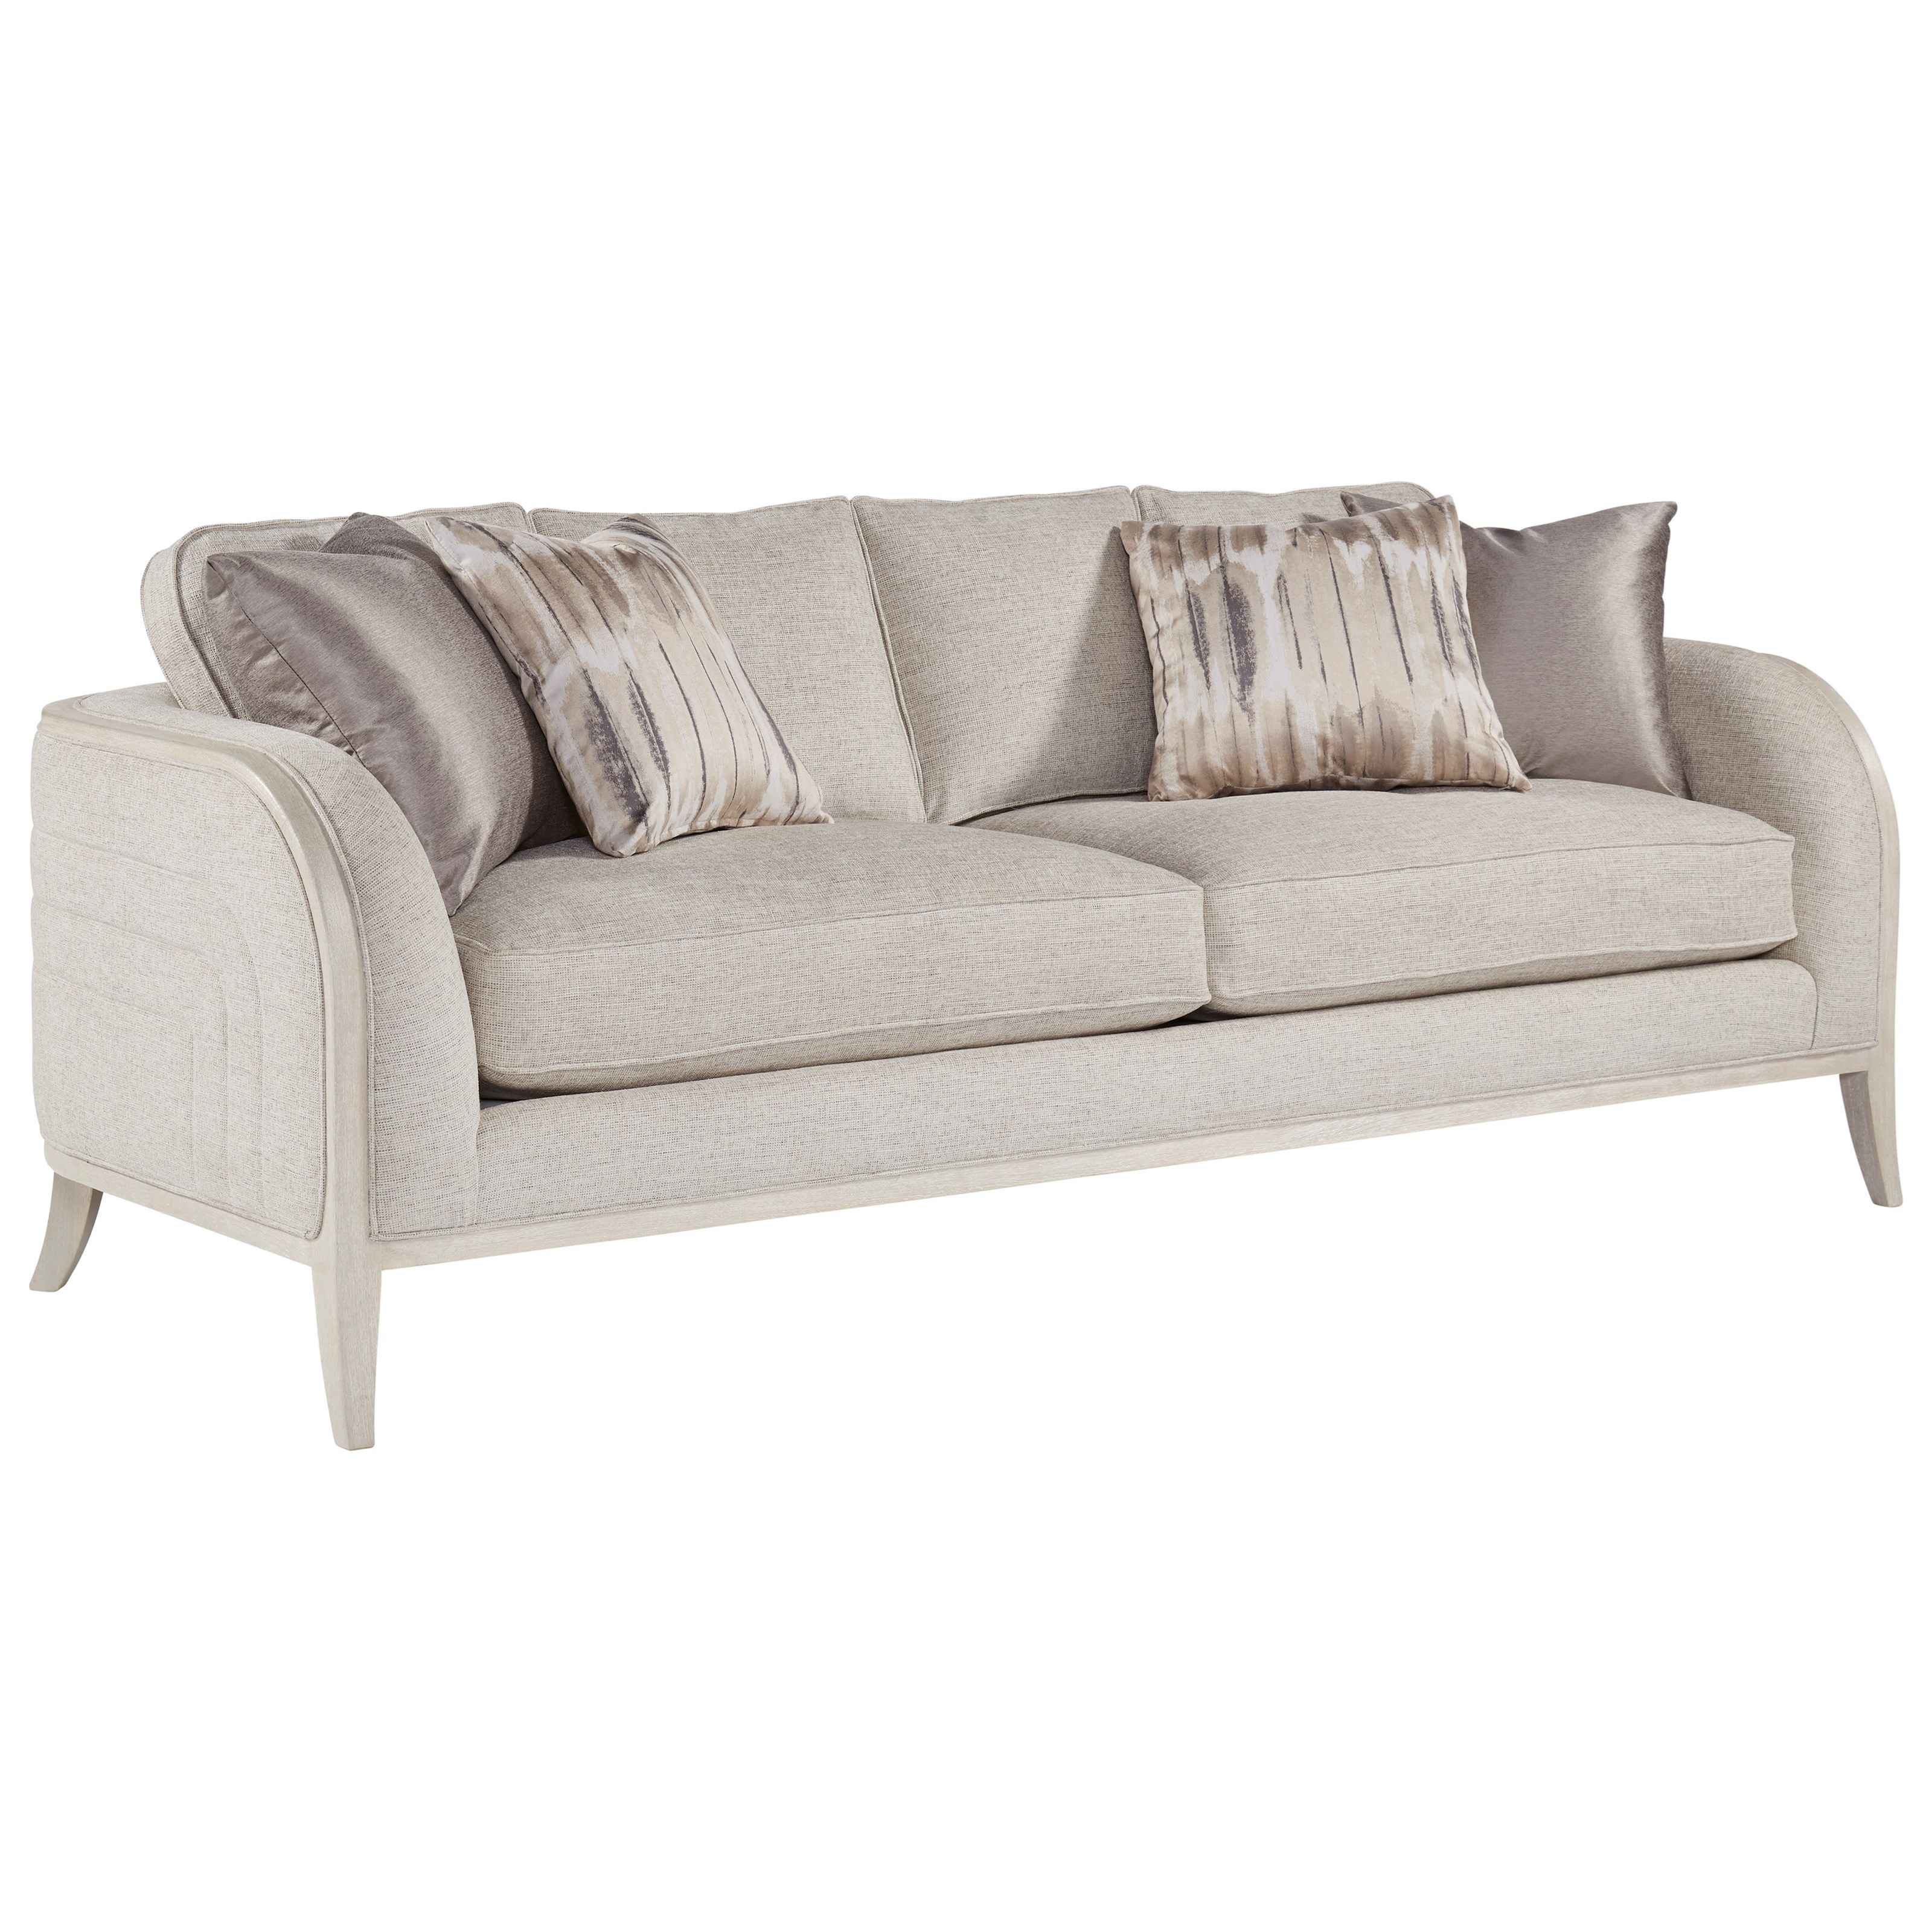 La Scala Upholstery Sofa by A.R.T. Furniture Inc at Home Collections Furniture